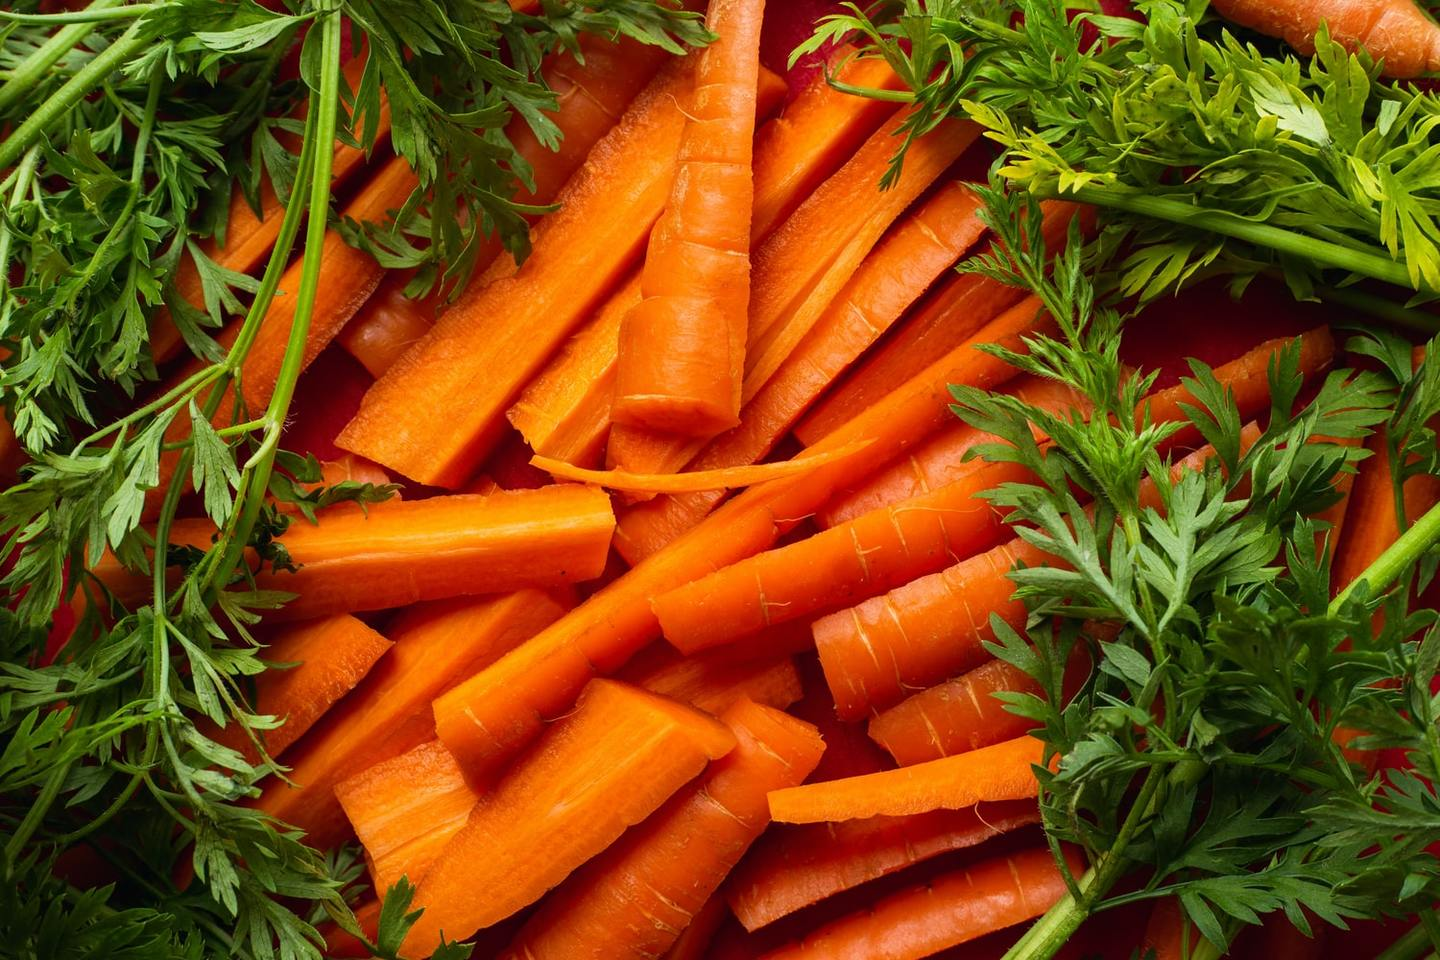 Cut and cooked carrots